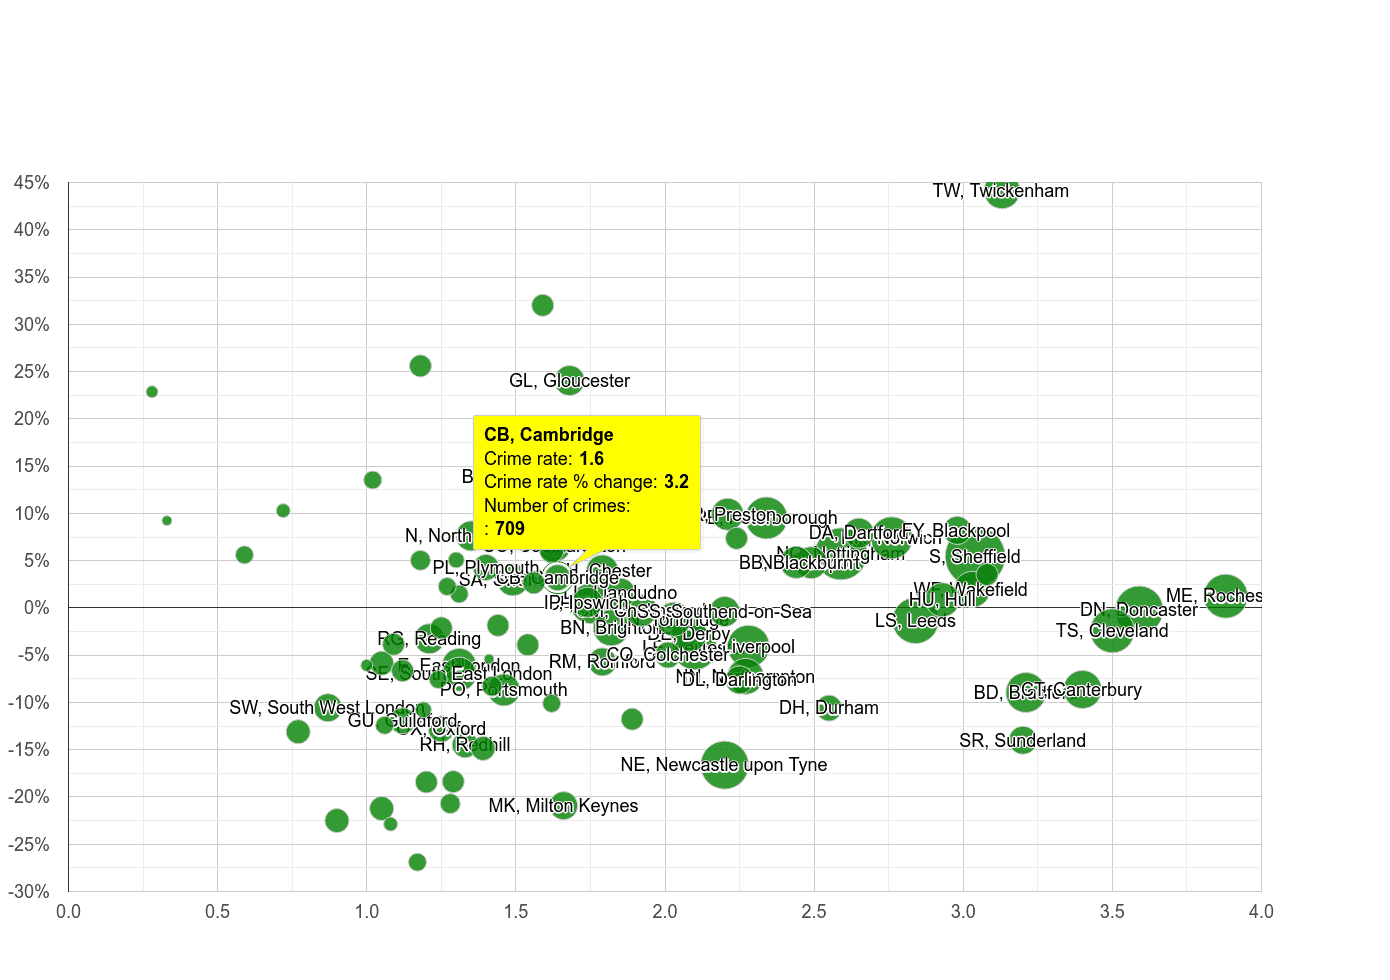 Cambridge other crime rate compared to other areas